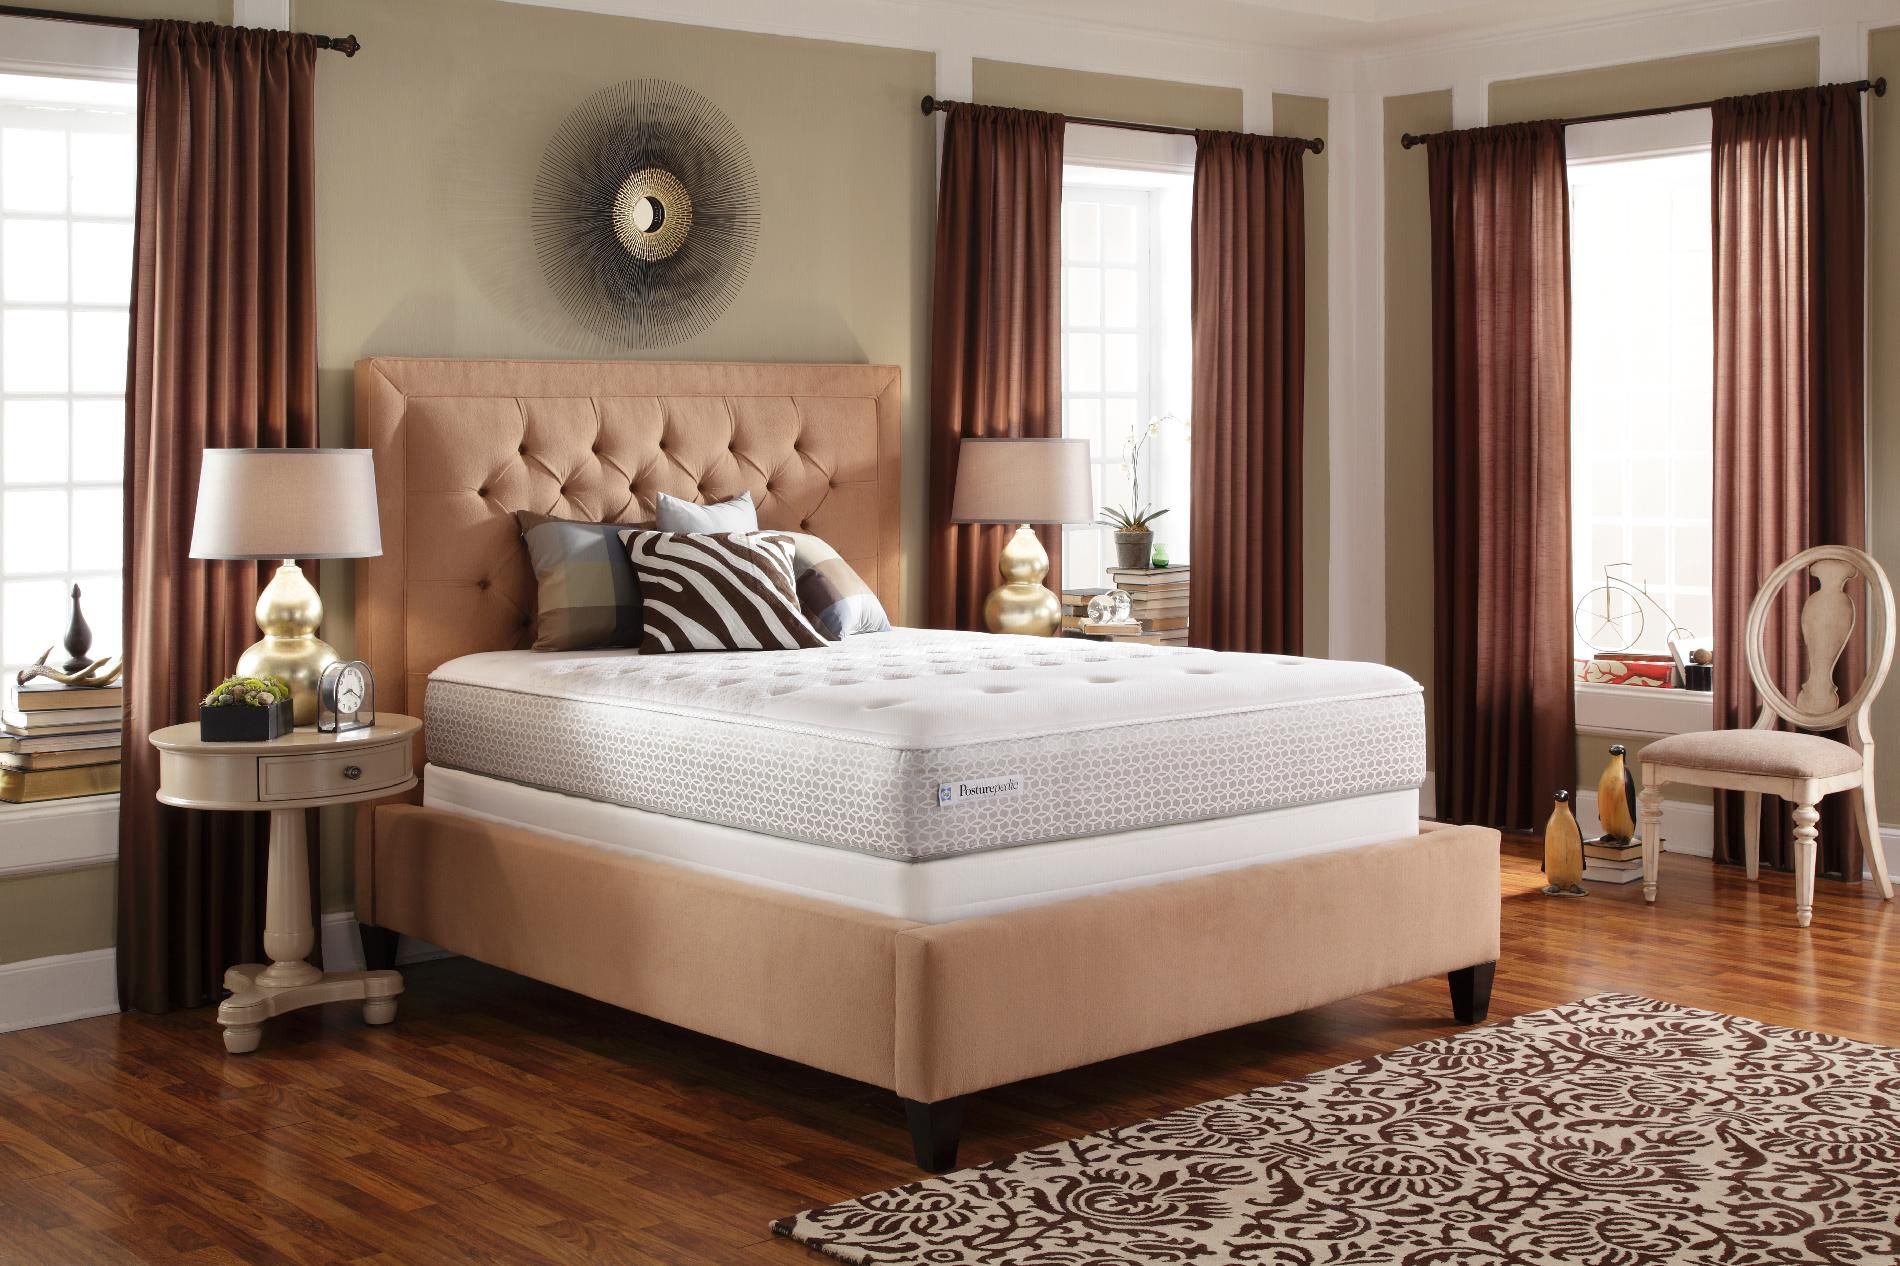 Asbury-TI-Cushion-Firm-California-King-Mattress-Only